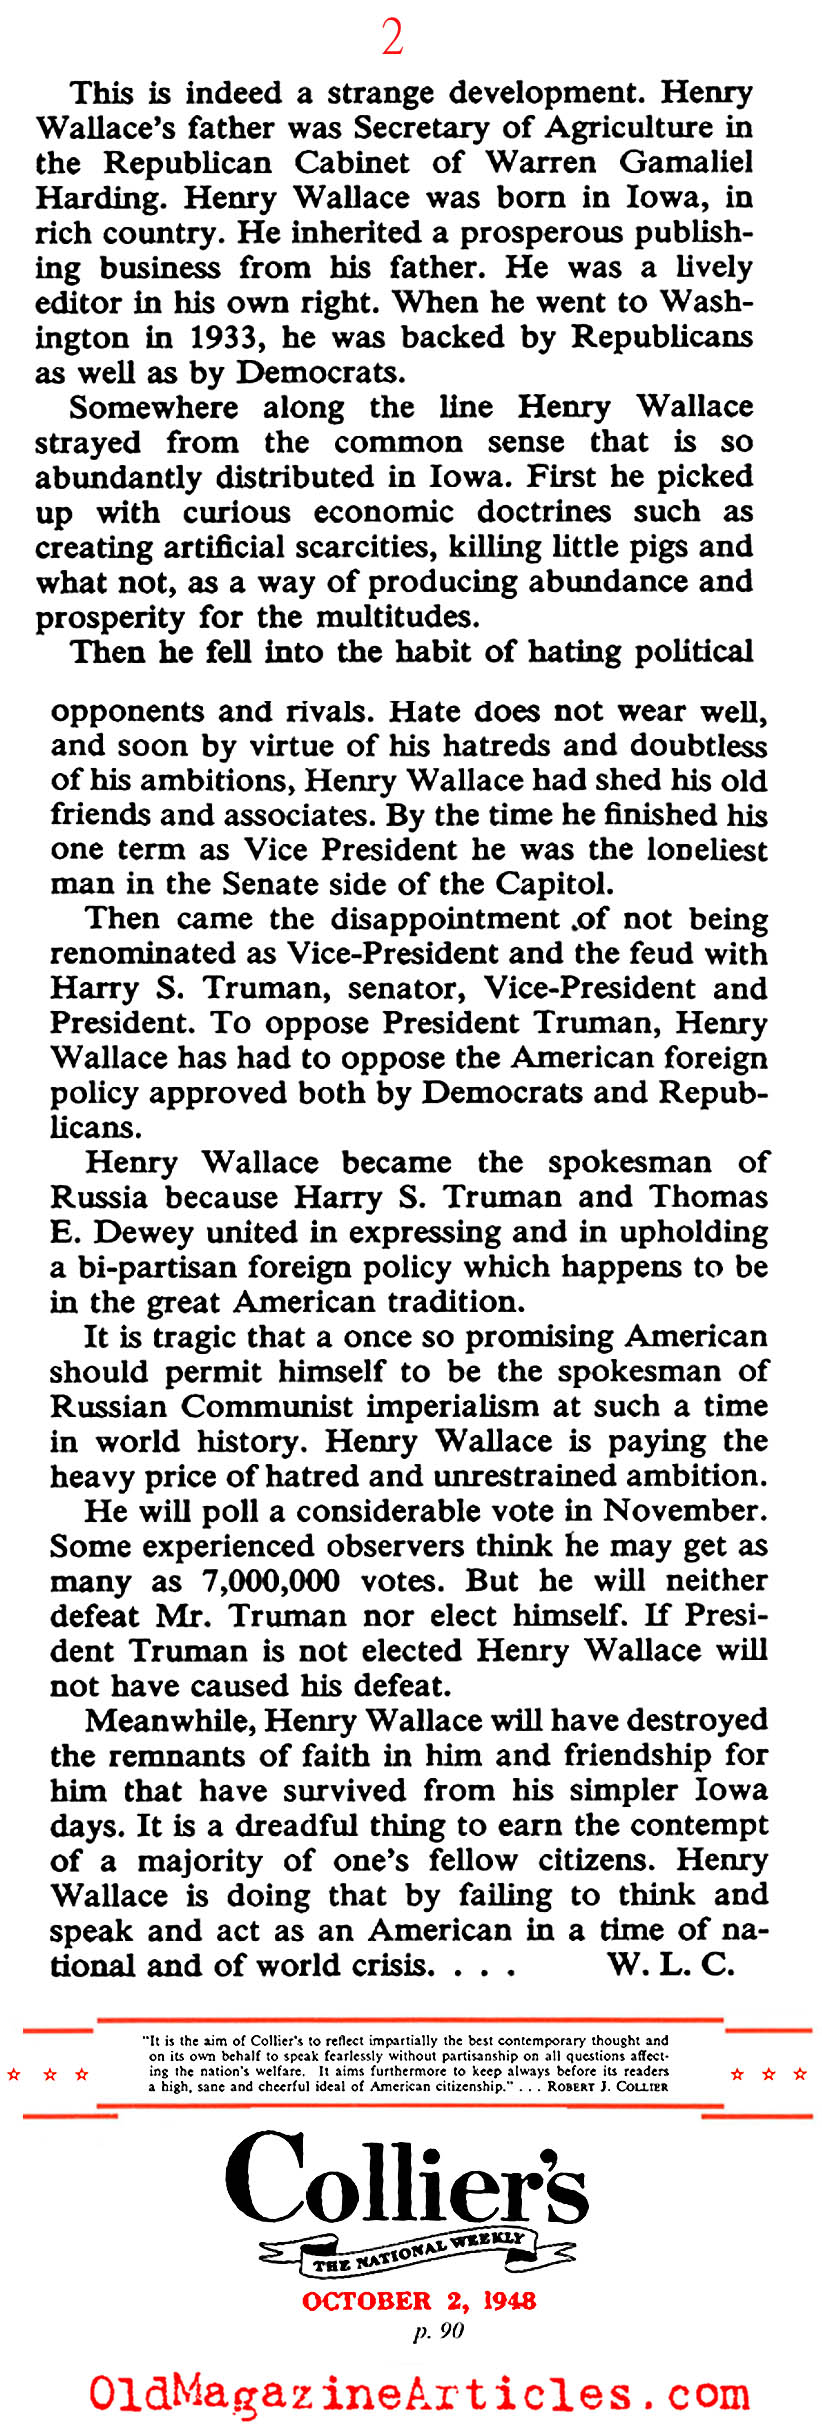 Henry Wallace: Was He Red? (Collier's Magazine, 1948)